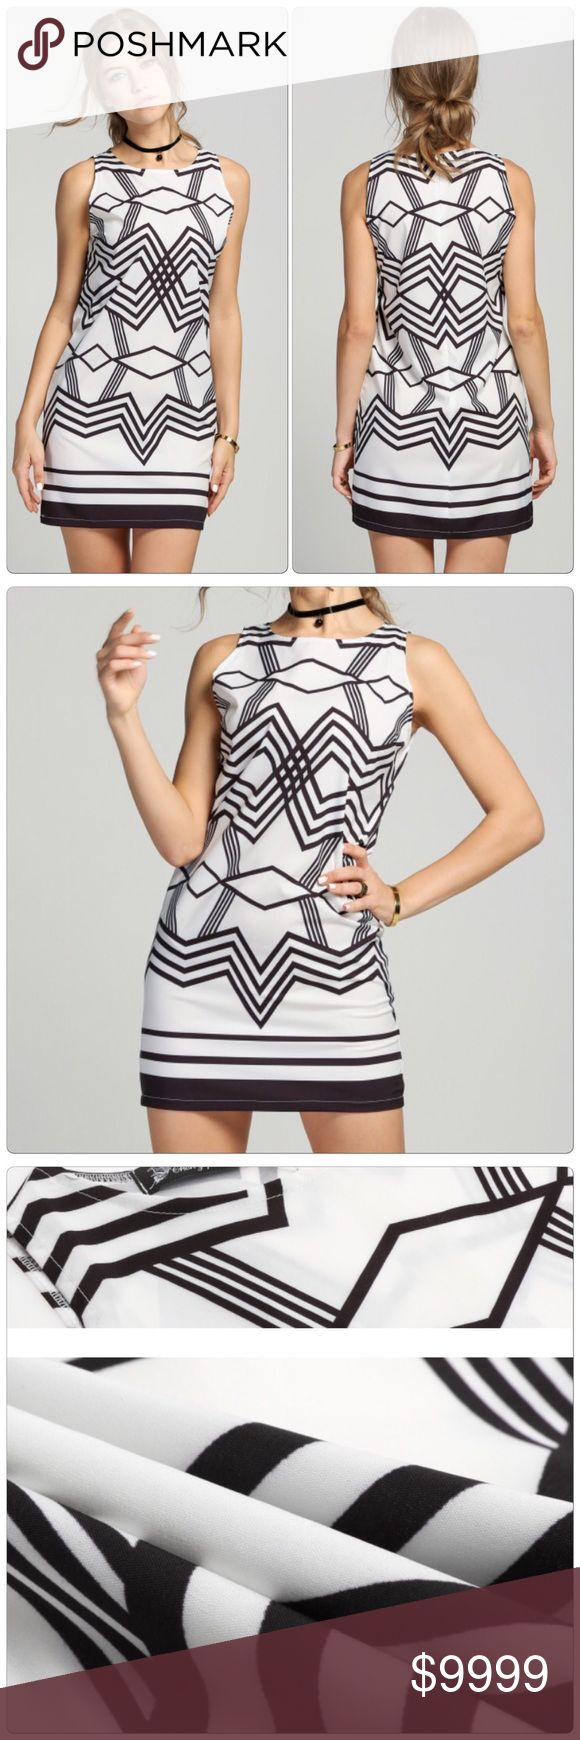 Geometric Pattern Short Dress Very Cool Geometric Pattern A-Line Short Dress, Material: Polyester Collar: Round Neck Dress Length: Above Knee Pattern: Geometric Pattern Closure Type: Zipper Back.                                                                                              ✅Price is firm unless bundle                                                                                                                             ❌NO TRADES. ❌NO LOWBALL OFFERS Dresses Mini